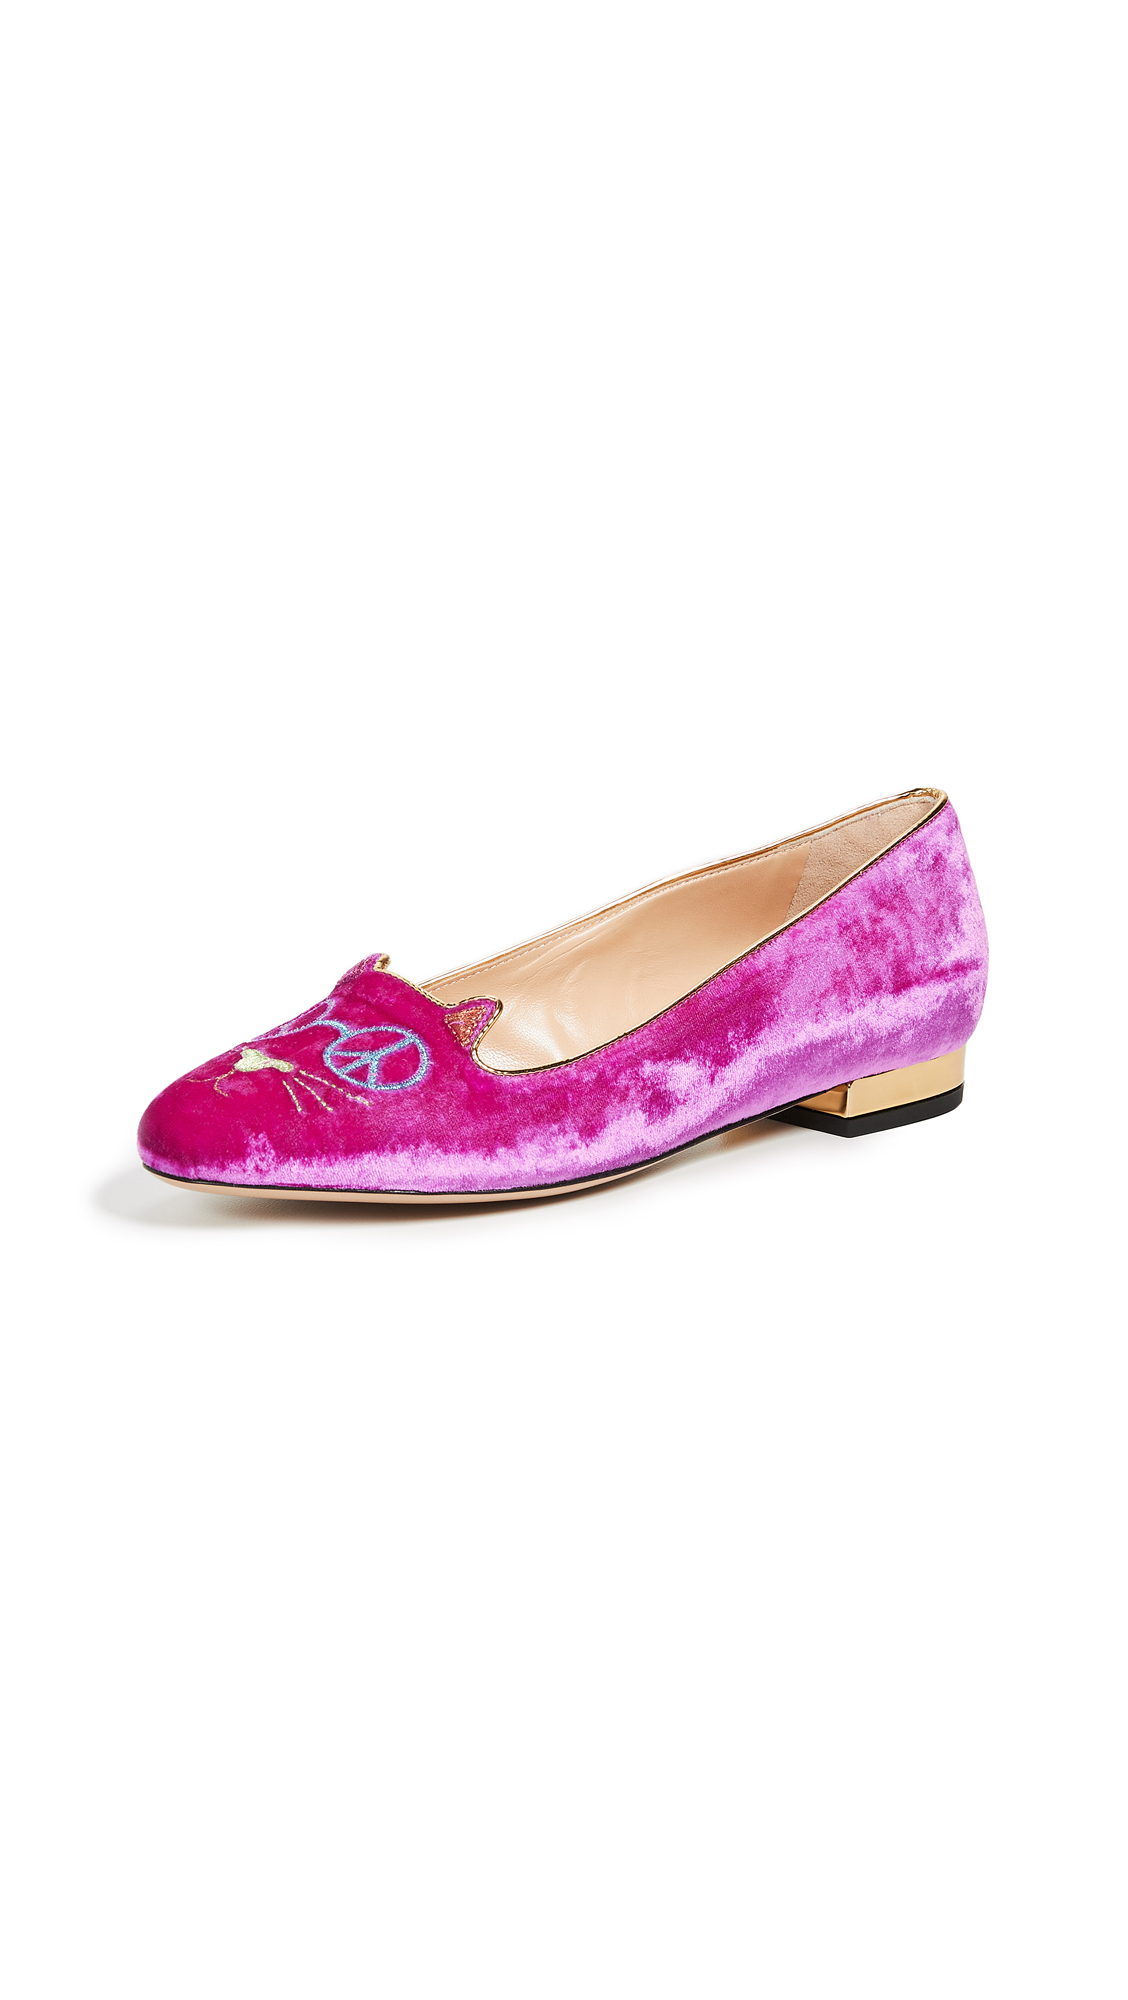 Charlotte Olympia Peaceful Kitty Flats